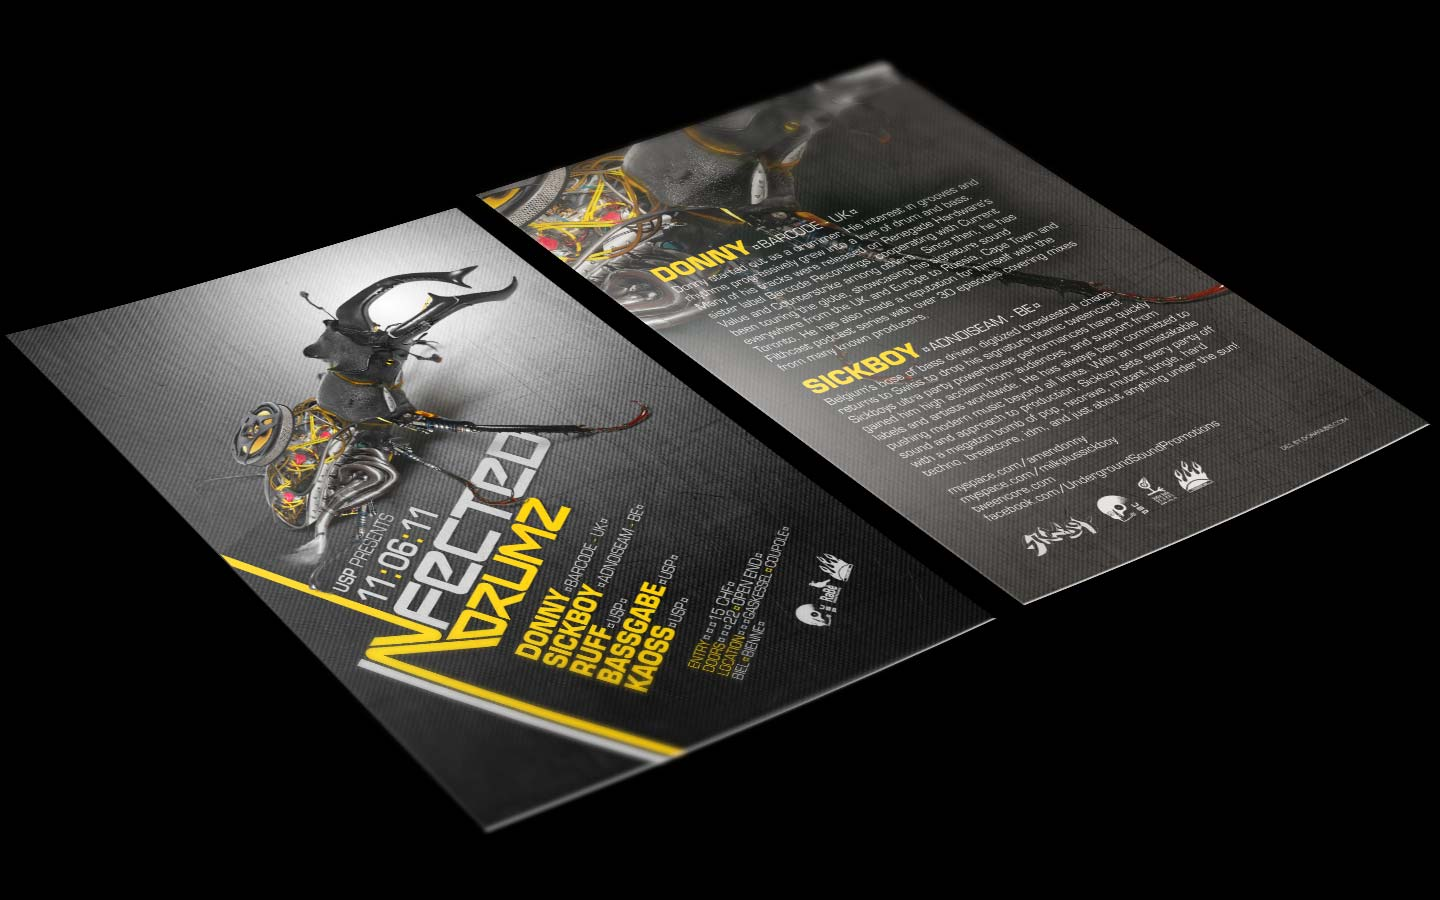 USP -Infected Drumz V - Laurent Lemoigne - Donanubis - Don Anubis - Graphic Design - Flyer - Underground Sound Promotion - Coupole - Bienne - Art - Music - Electronic - Party - Event - Flyer - Poster - Industrial - Dark - Insect - Infectious - Infected - Mechanic - Biomechanic - Biomechanik - Biomechanical - Biomechanoid - - Giger - Alternative - Underground - Geneva - Switzerland - Drum and Bass - d'n'b - Hard Drum - Donny / BArcode - Sickboy / Adnoiseeam - Ruff - Bassgabe - Kaoss - Metal - Hard - Rock - Death - Band - Illustration